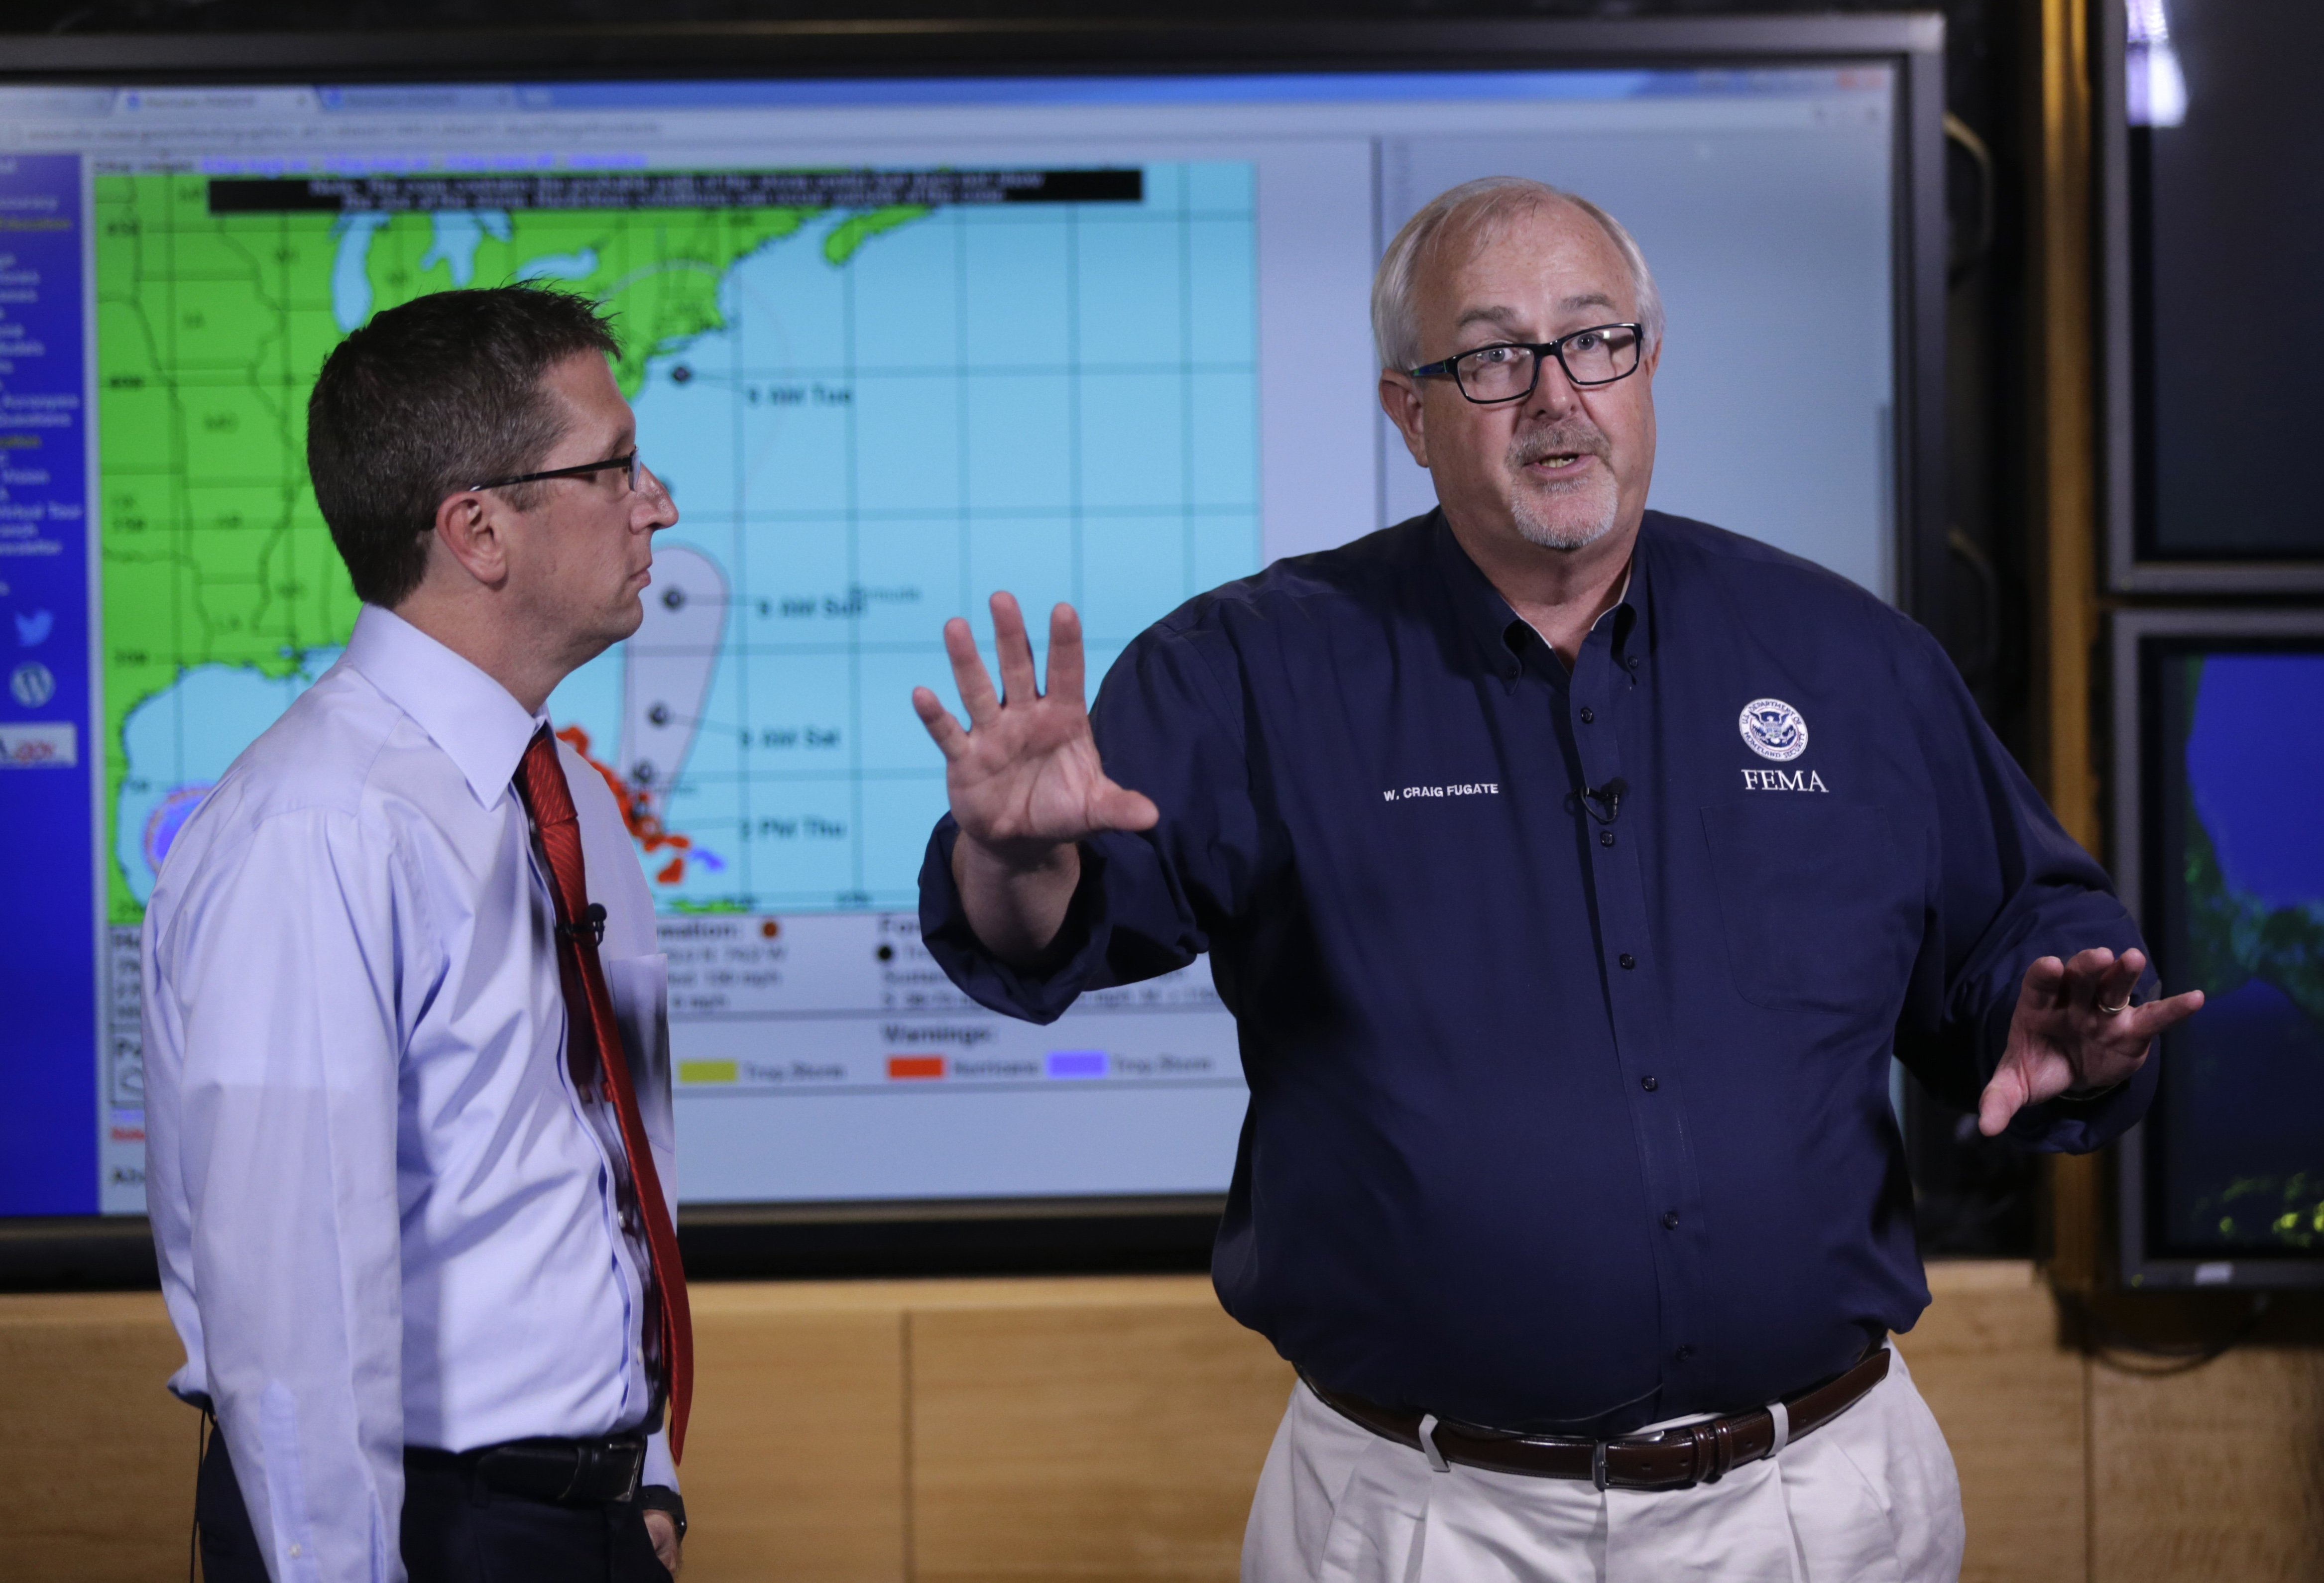 Craig Fugate, Administrator of the Federal Emergency Management Agency (FEMA), right, talks about the status of Hurricane Joaquin as it moves through the eastern Bahamas as Rick Knabb, Director of the National Hurricane Center, left, looks on at the National Hurricane Center in Miami, on Oct. 1, 2015.